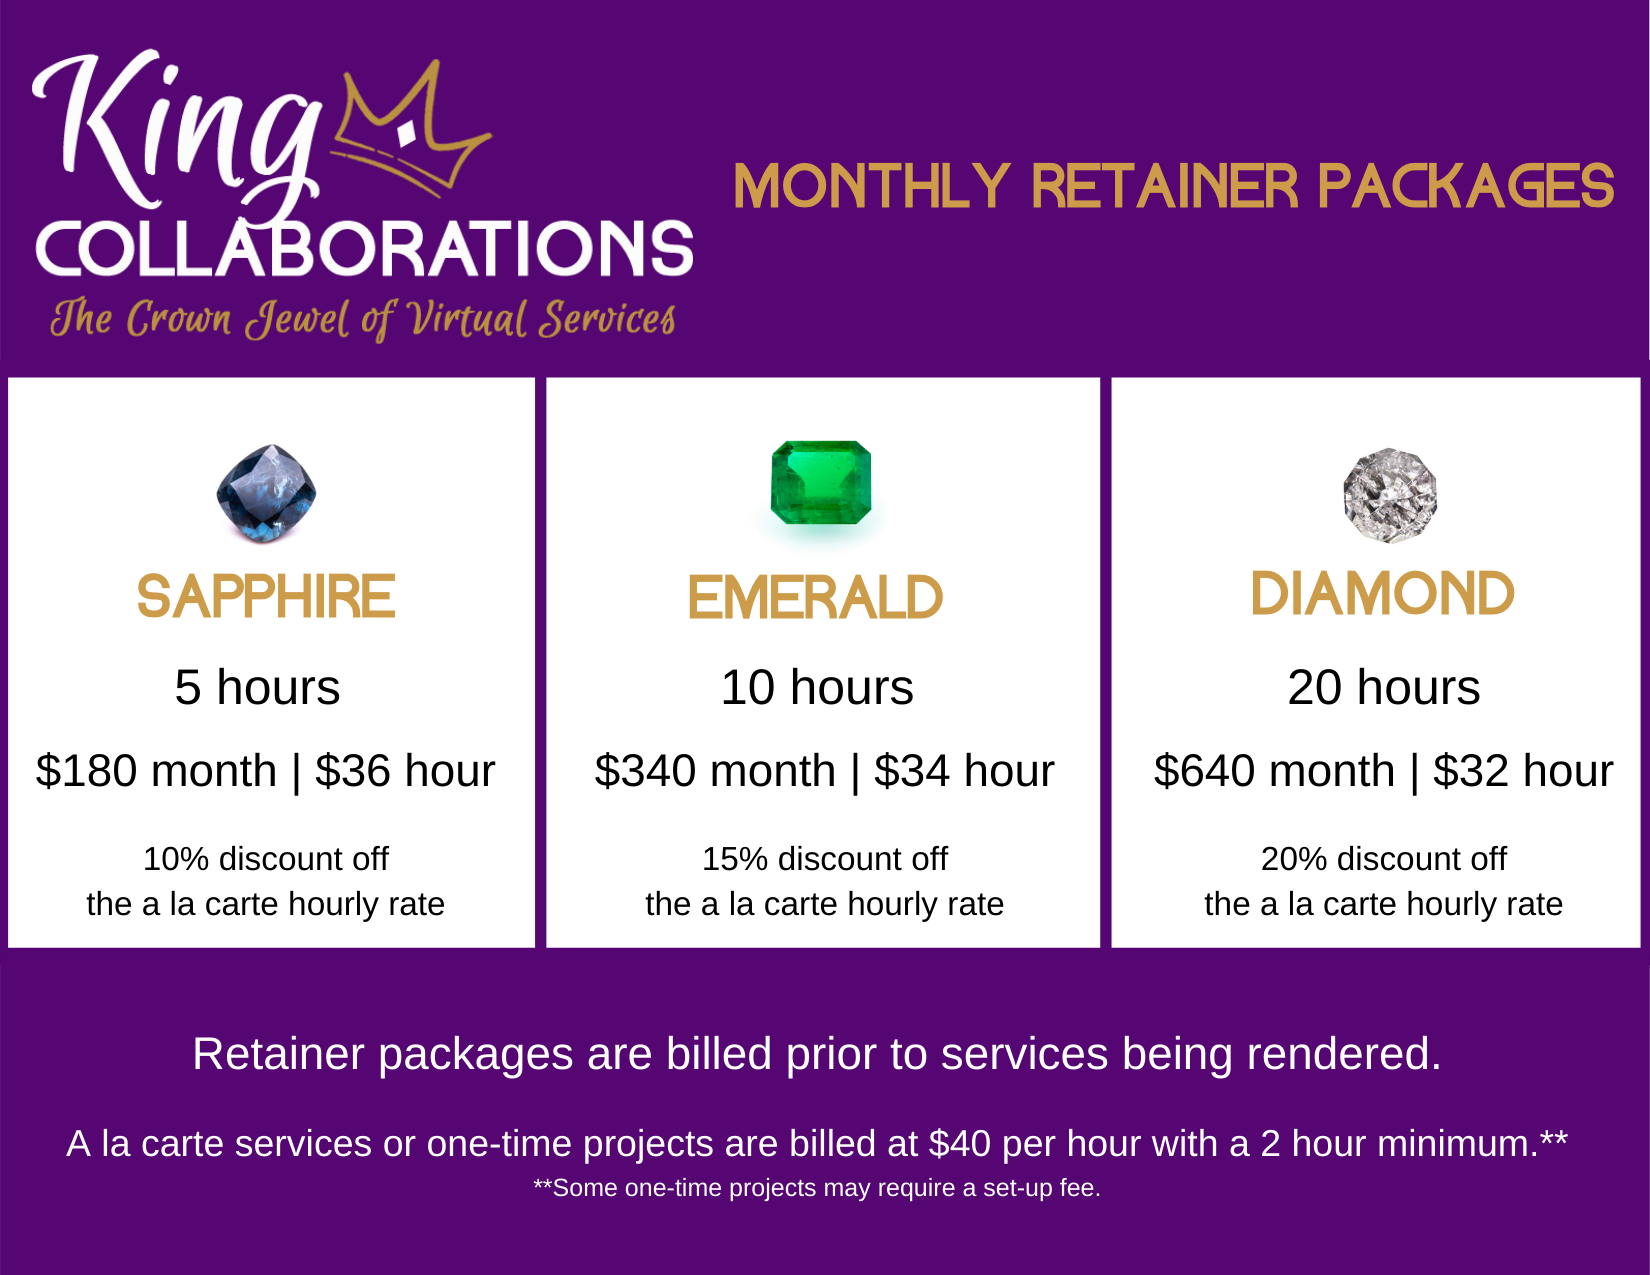 Monthly Retainer Packages